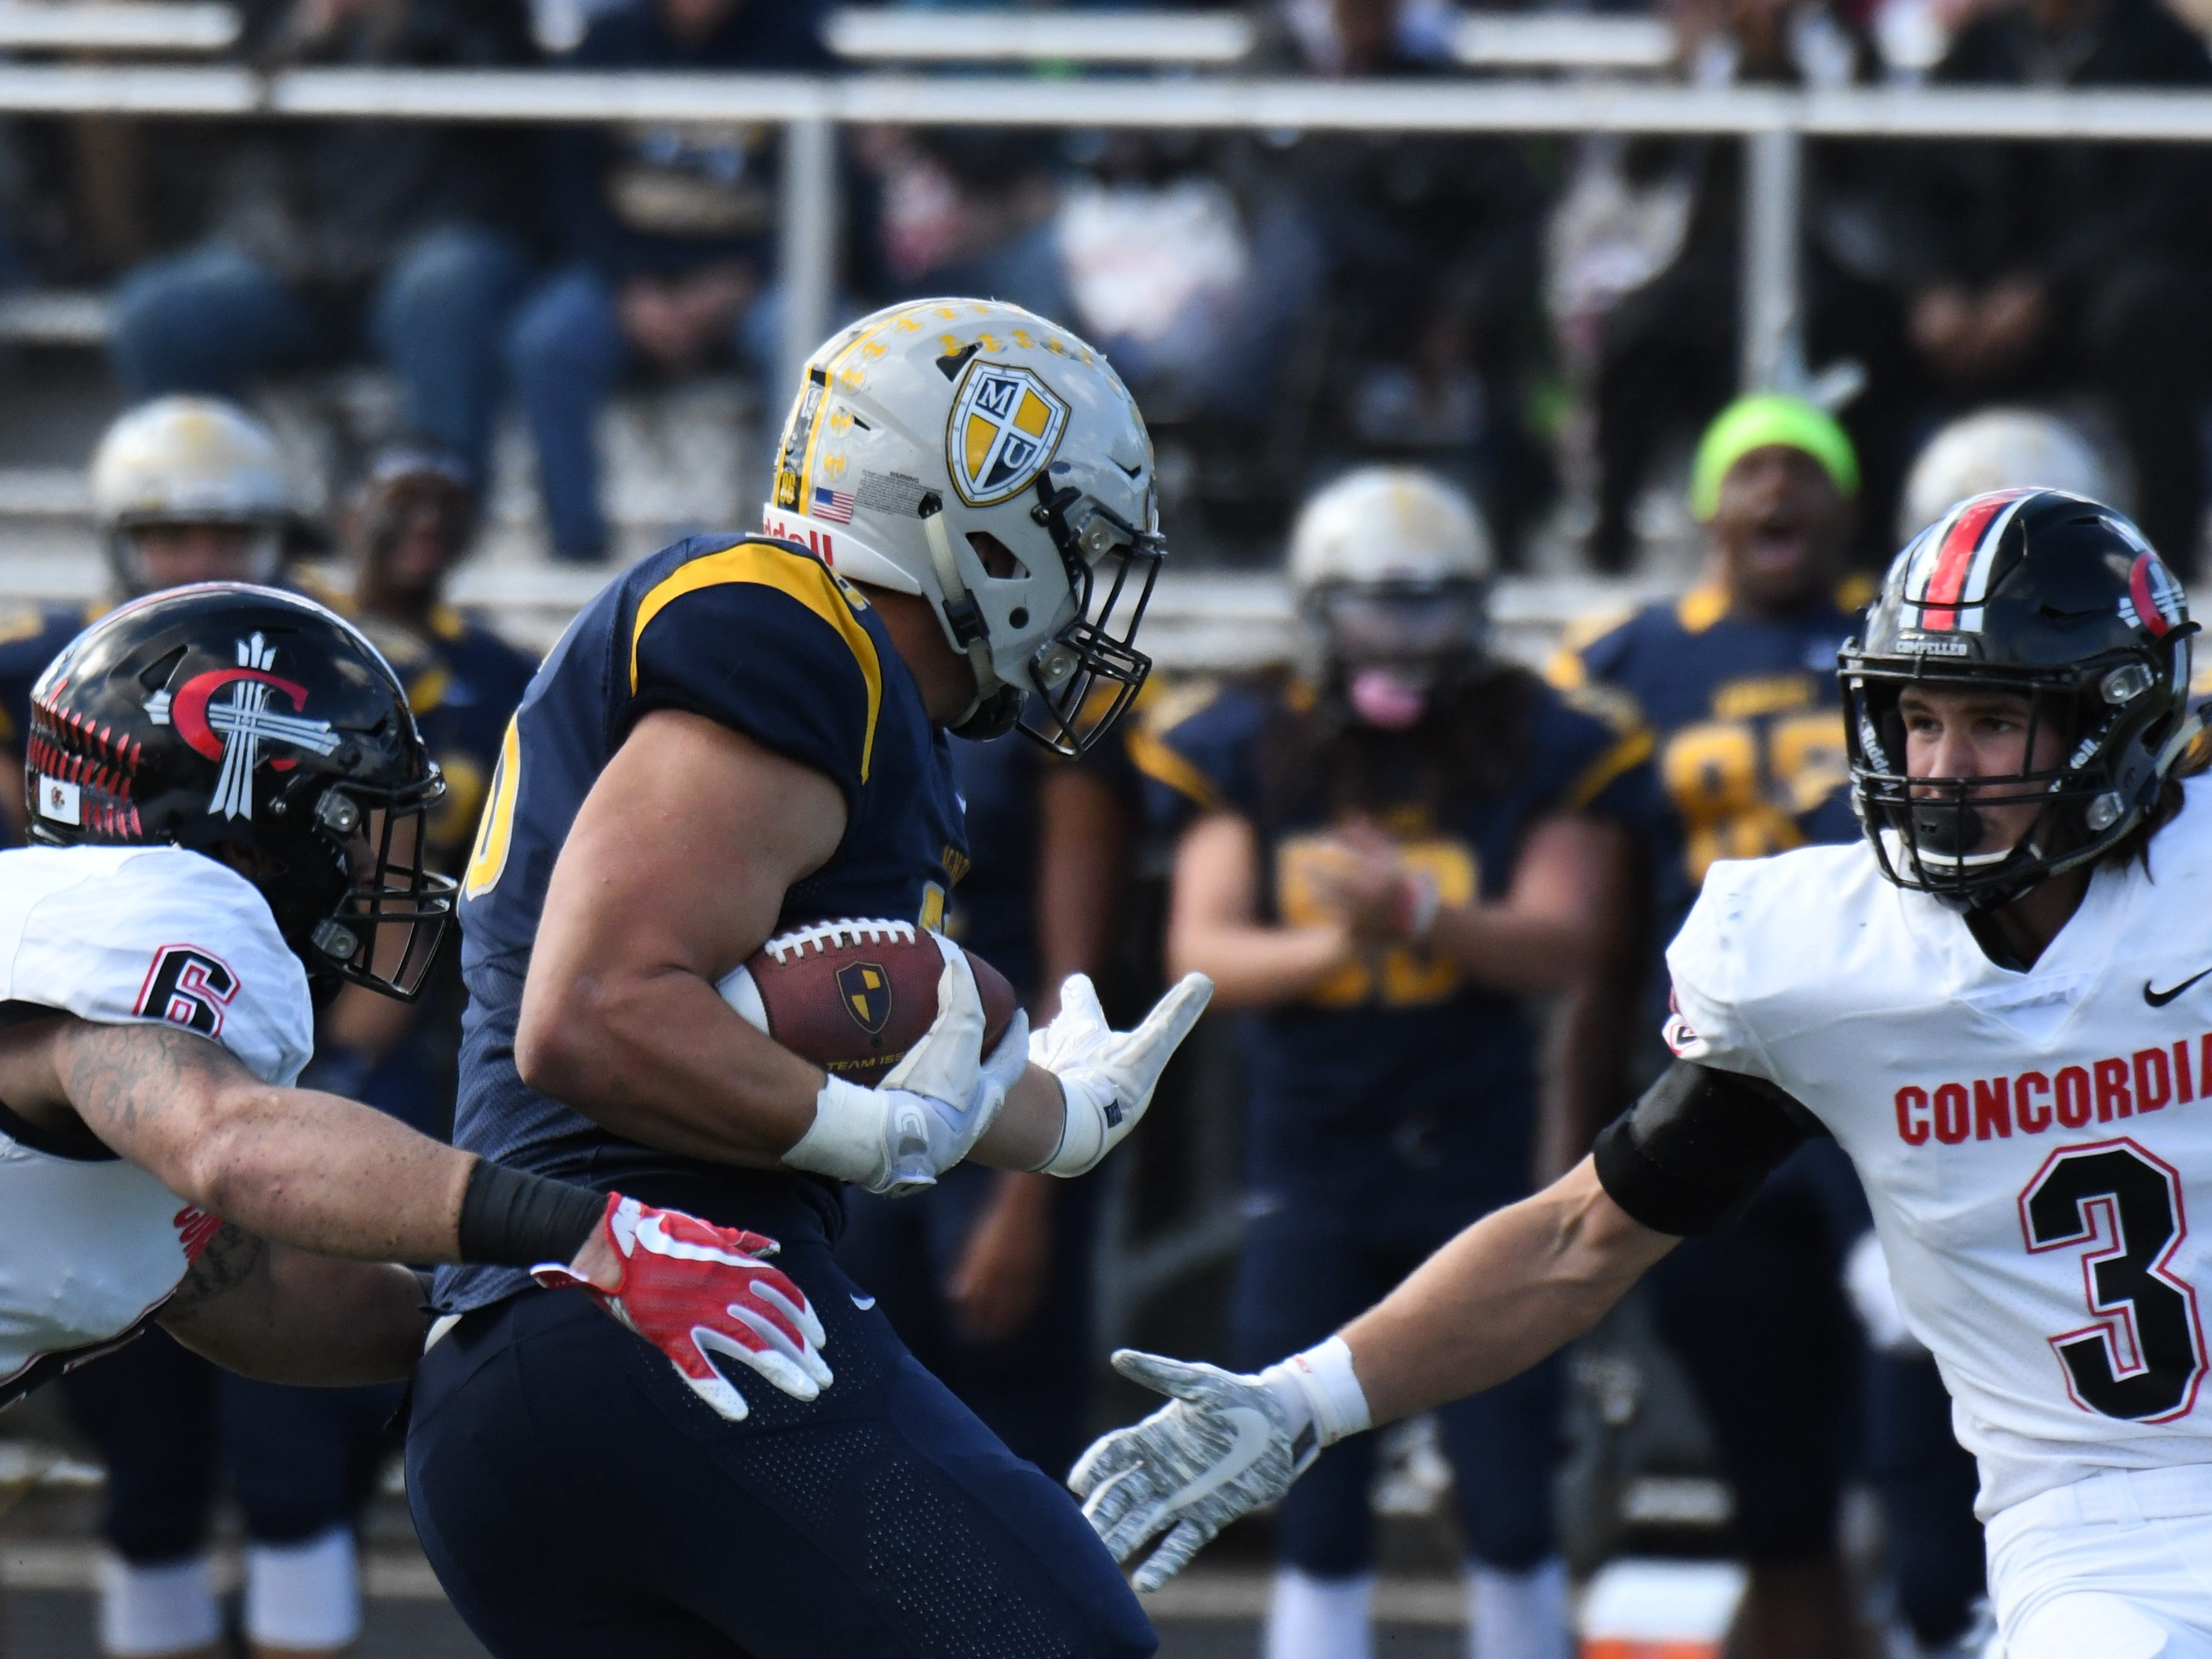 Marion University tight end Brandon Dillon looks to break a tackle against Concordia.